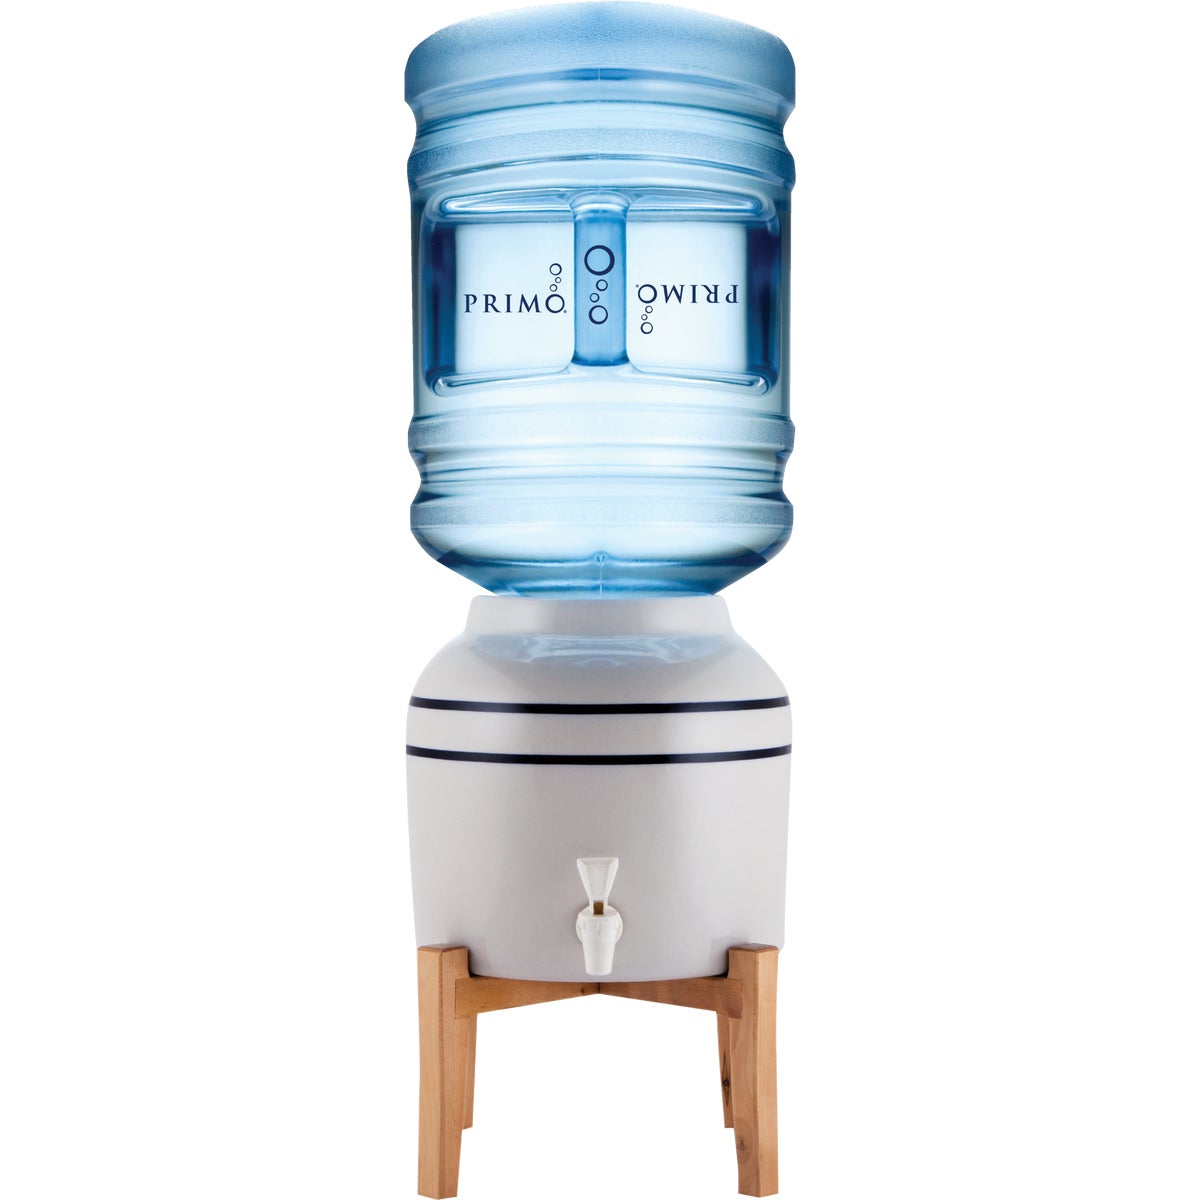 CERAMIC WATER DISPENSER - 900114 by Primo Water Corp